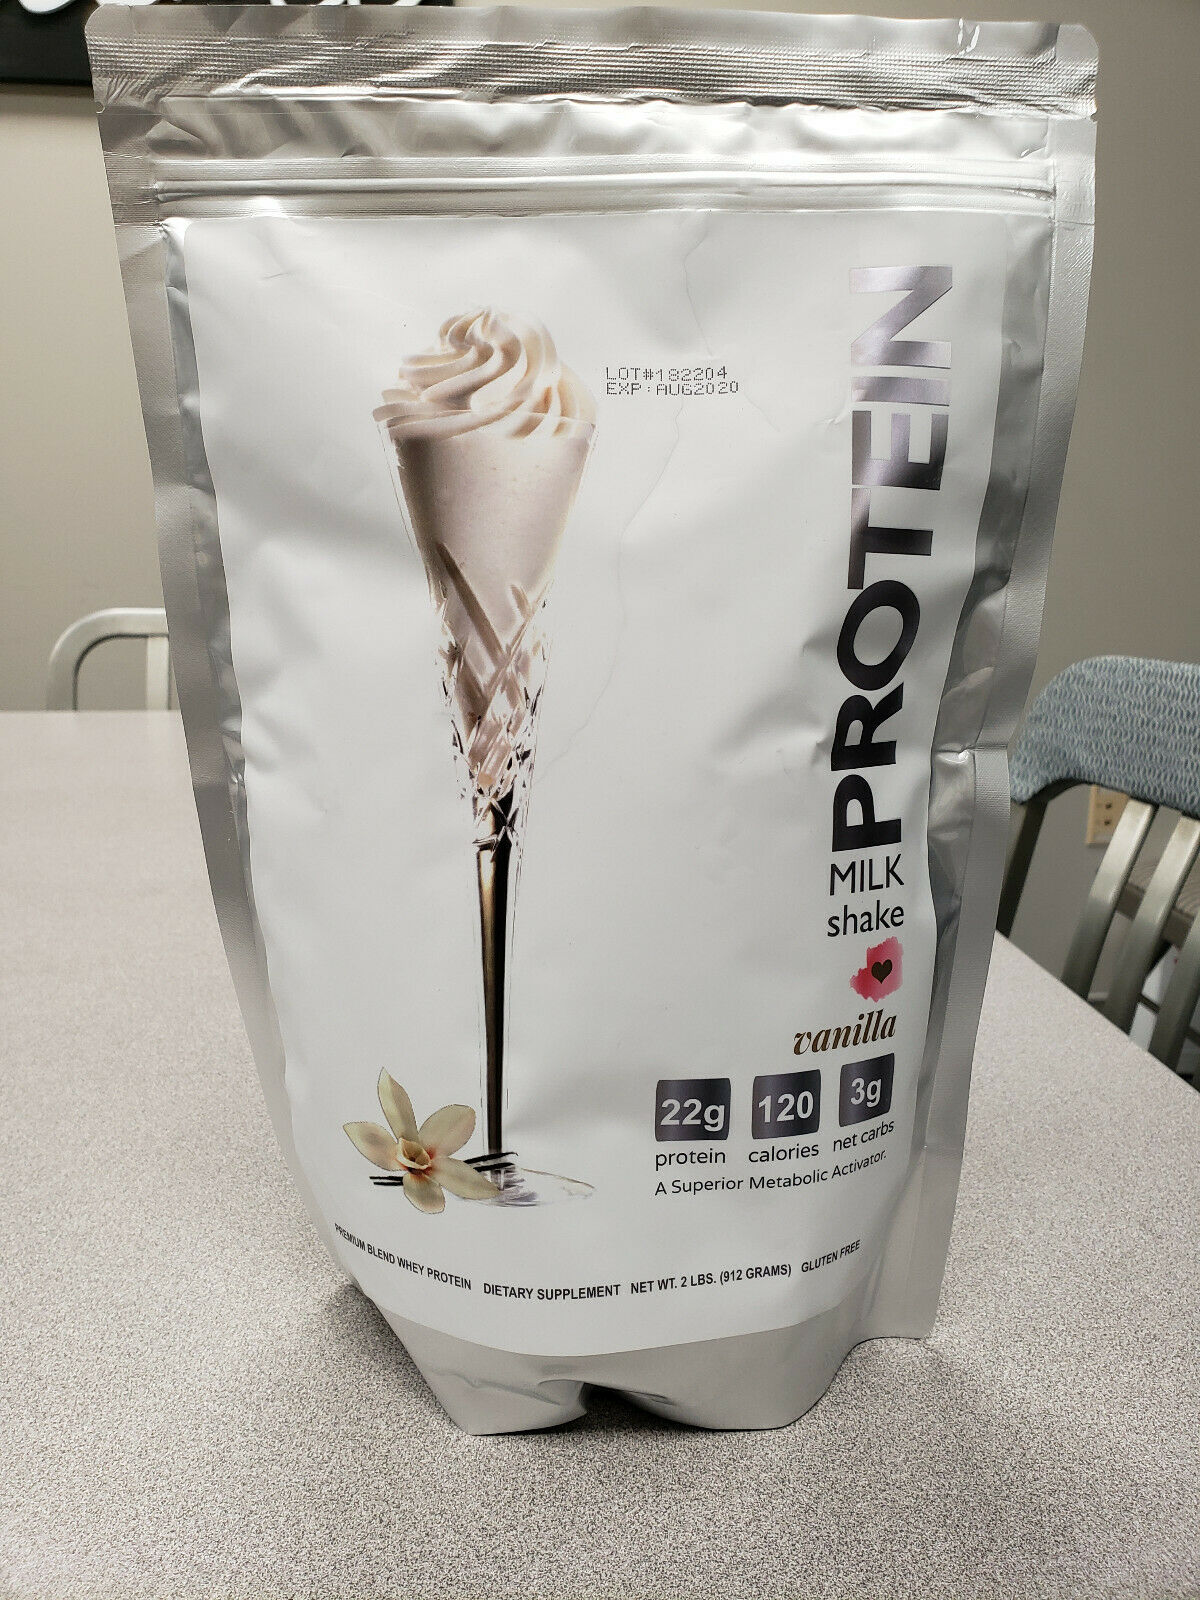 Vanilla Protein Milkshake Bar Powder 2 LB Bag 75% OFF RETAIL